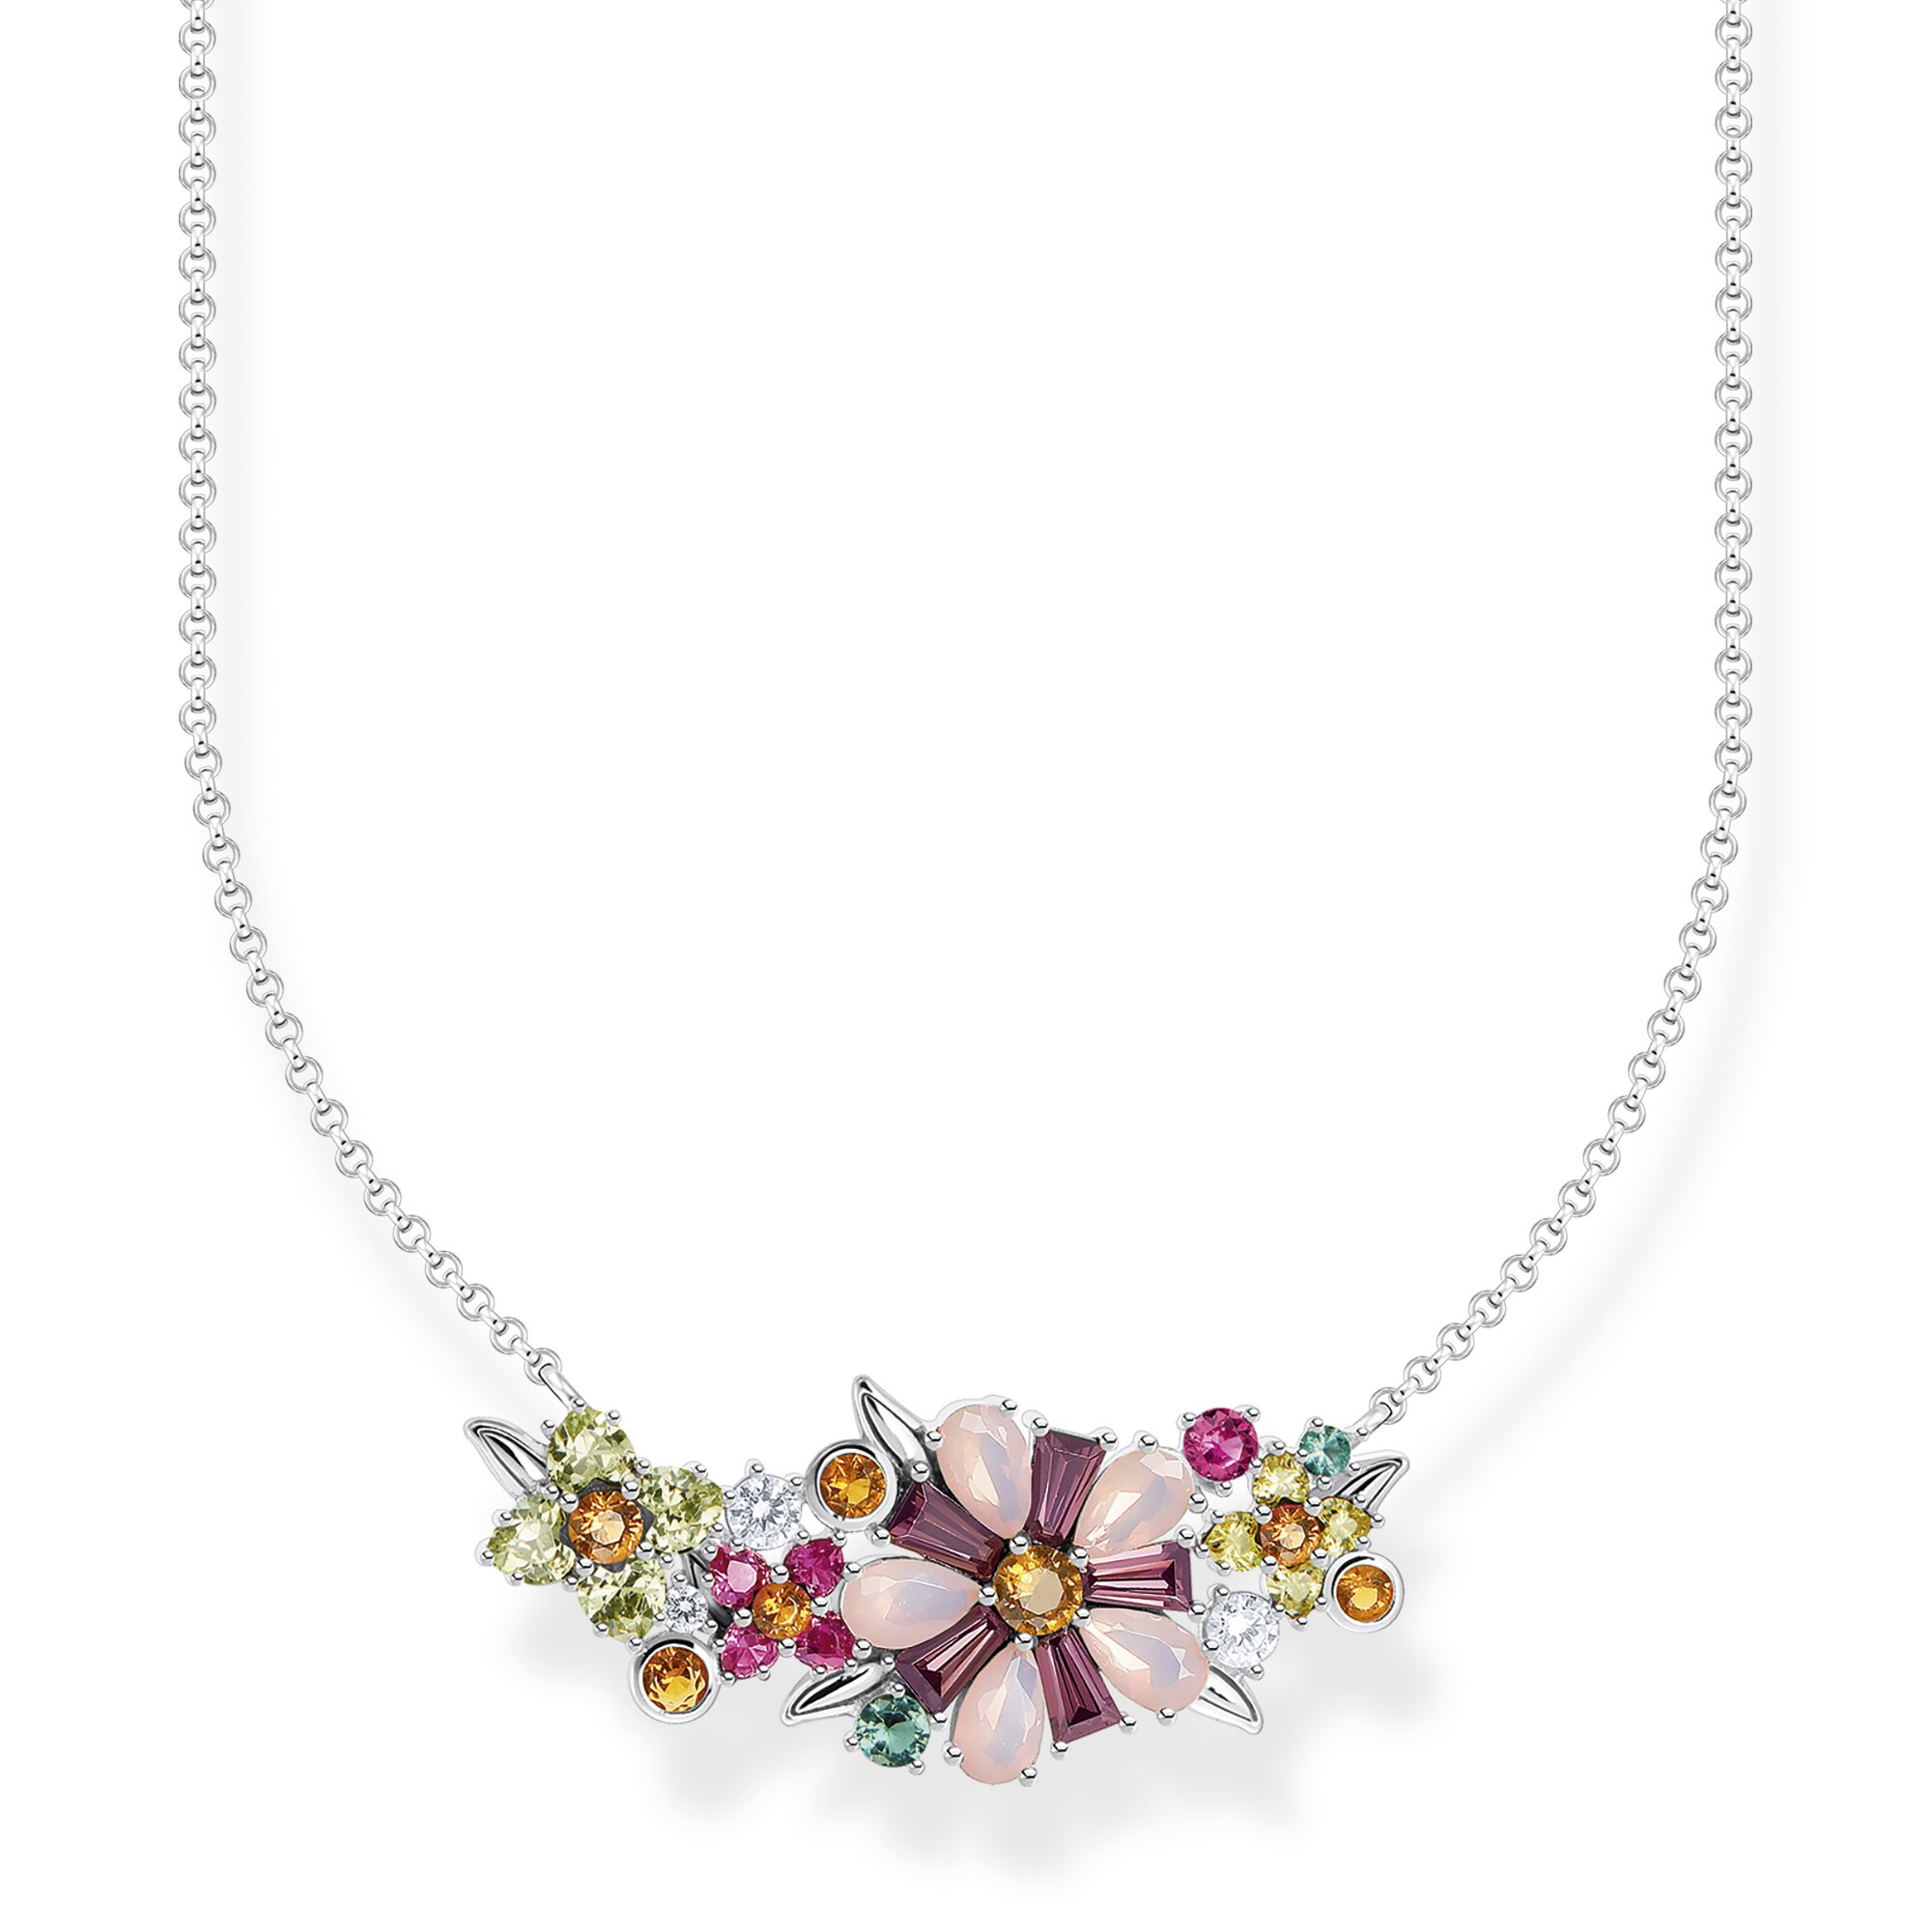 Necklace flowers colourful stones silver